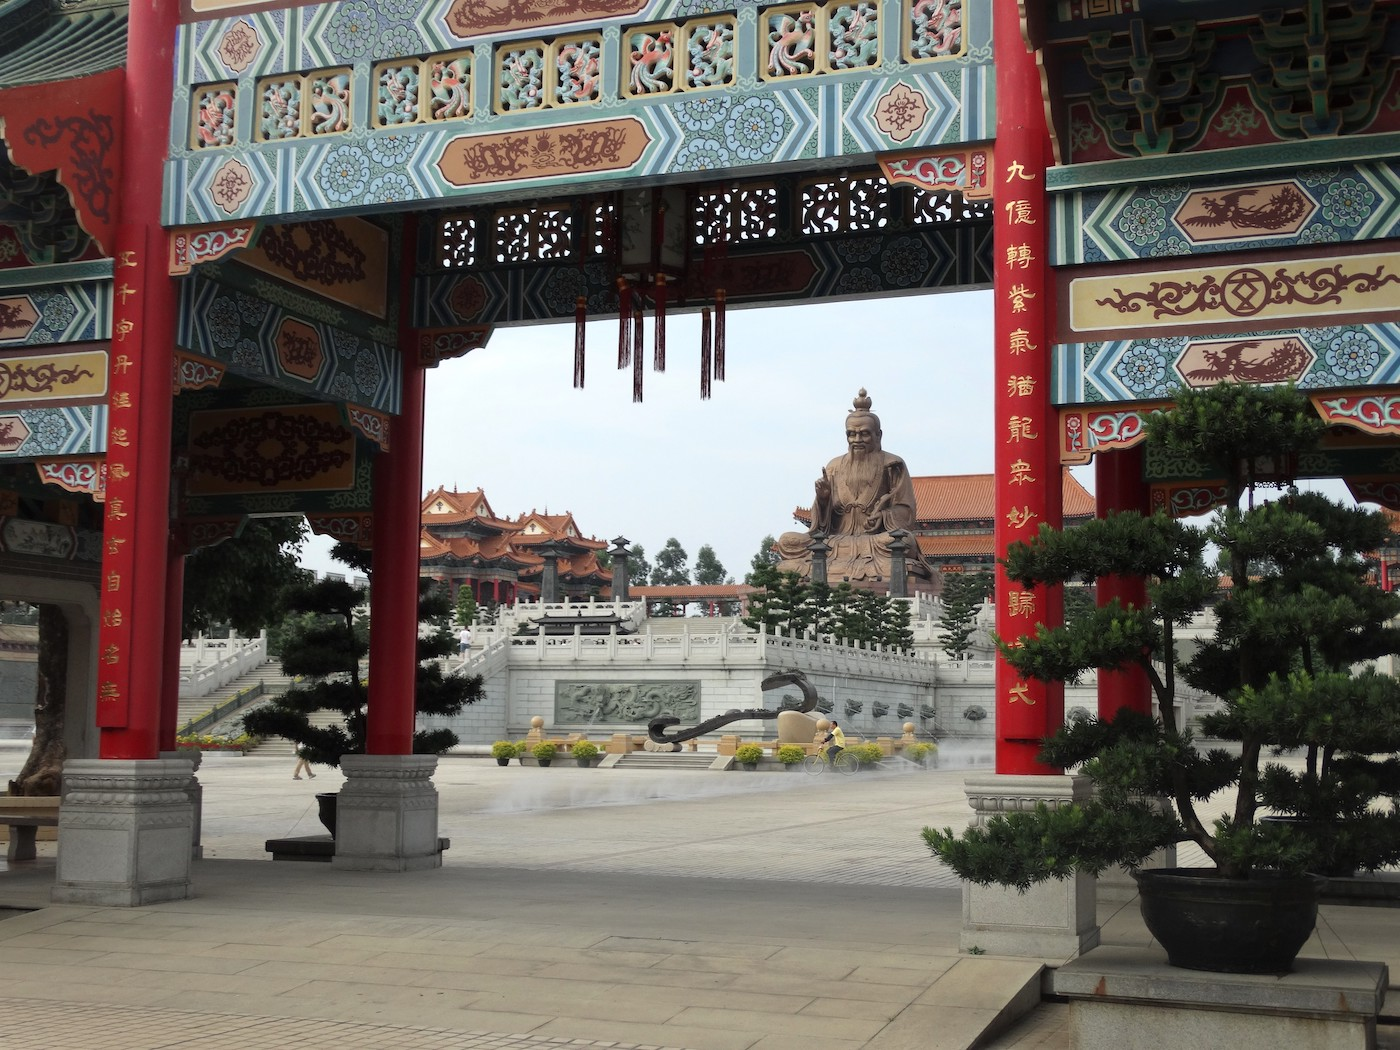 Tao temple guangzhou in China